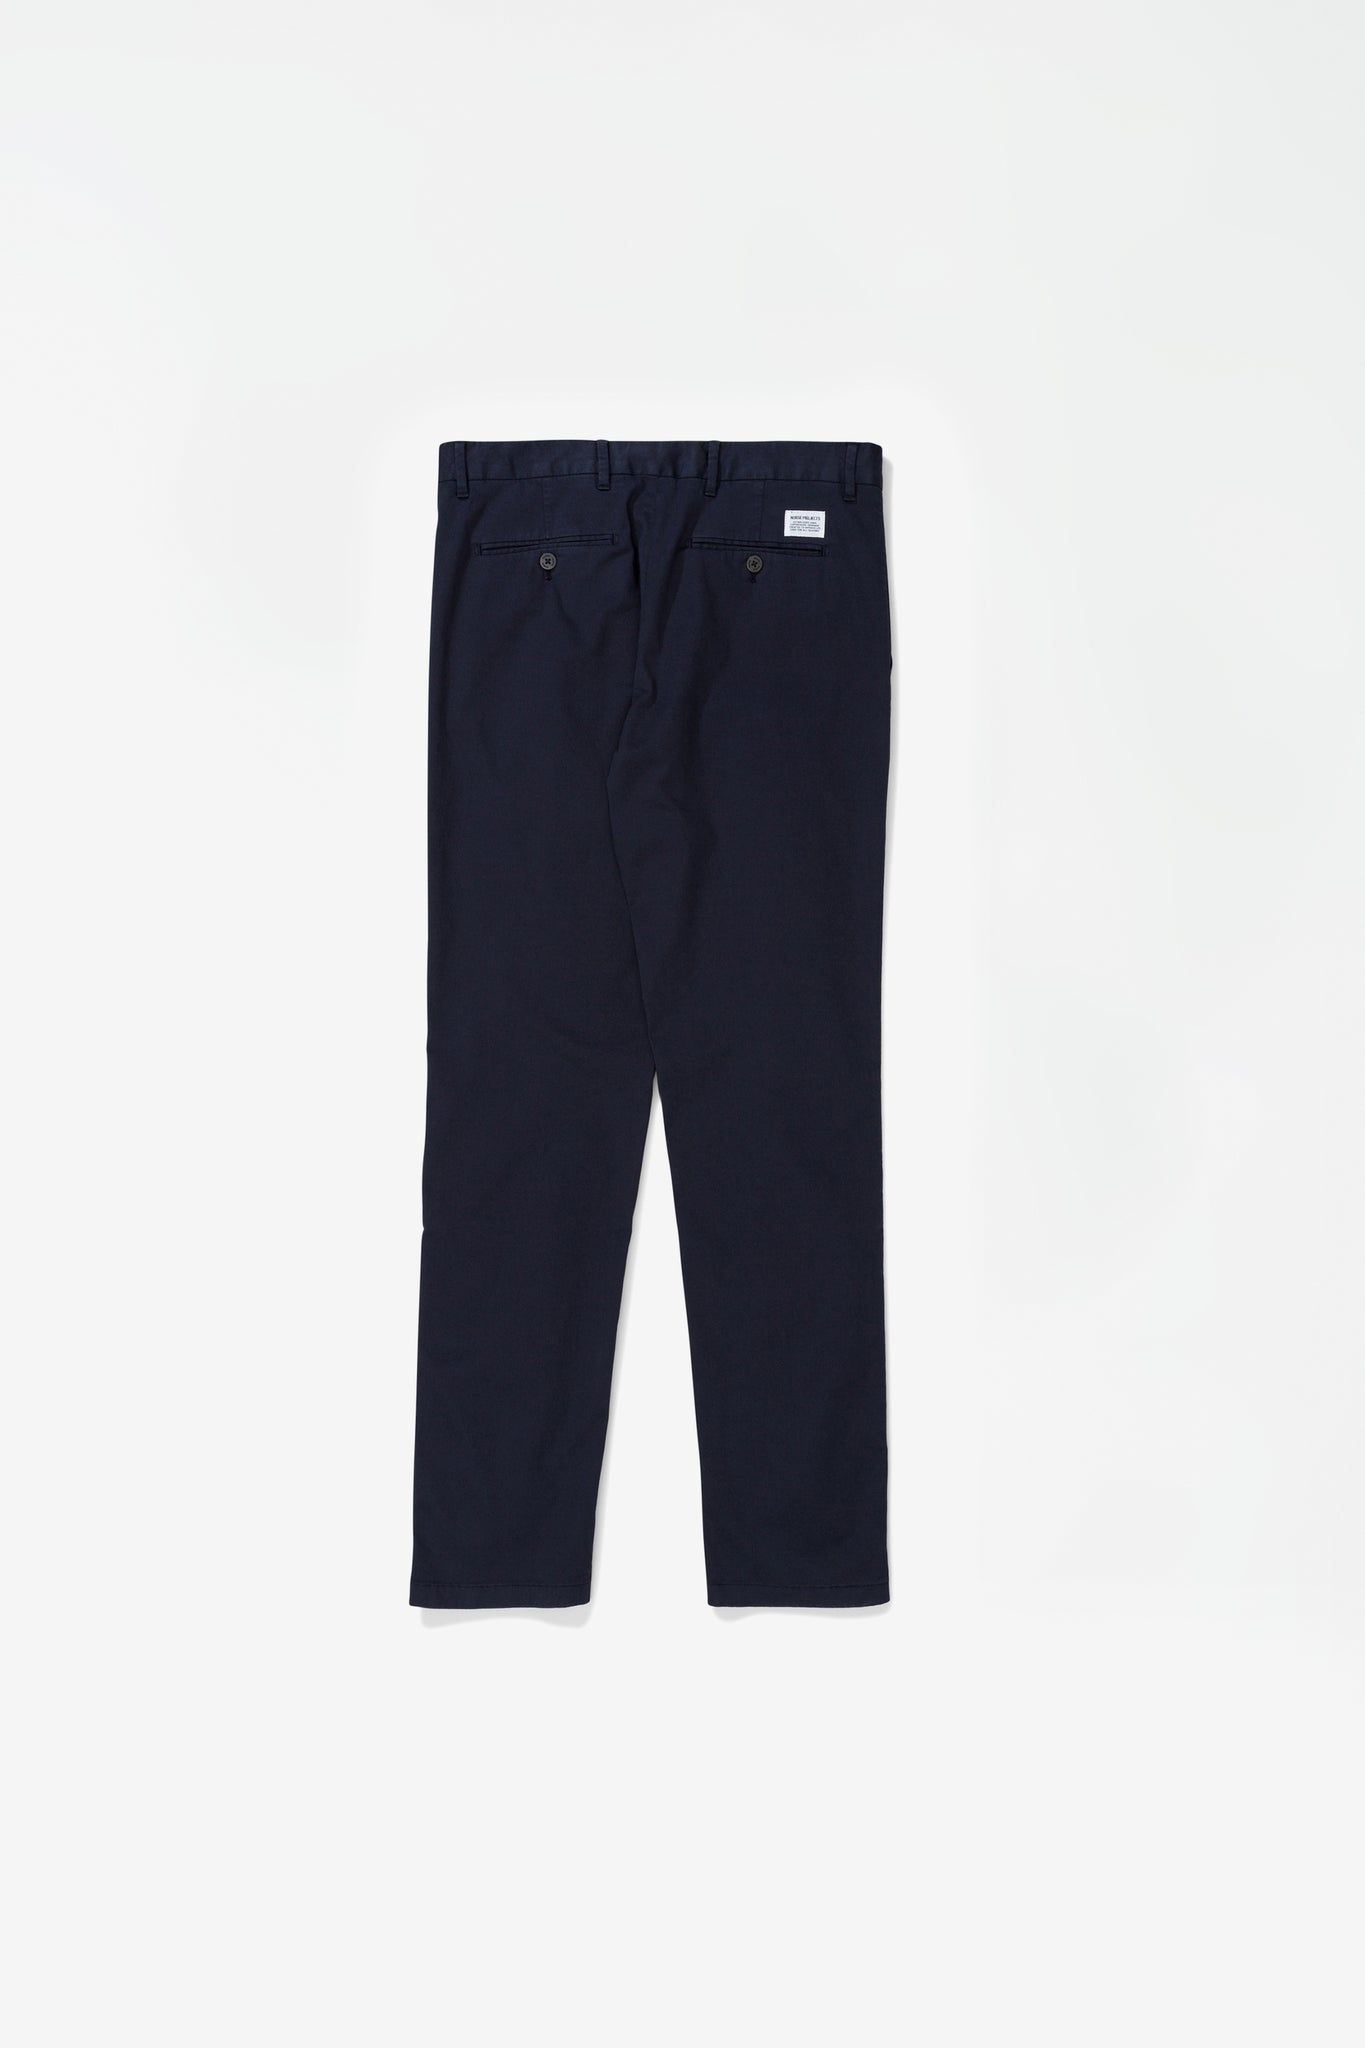 Aros slim light stretch dark navy